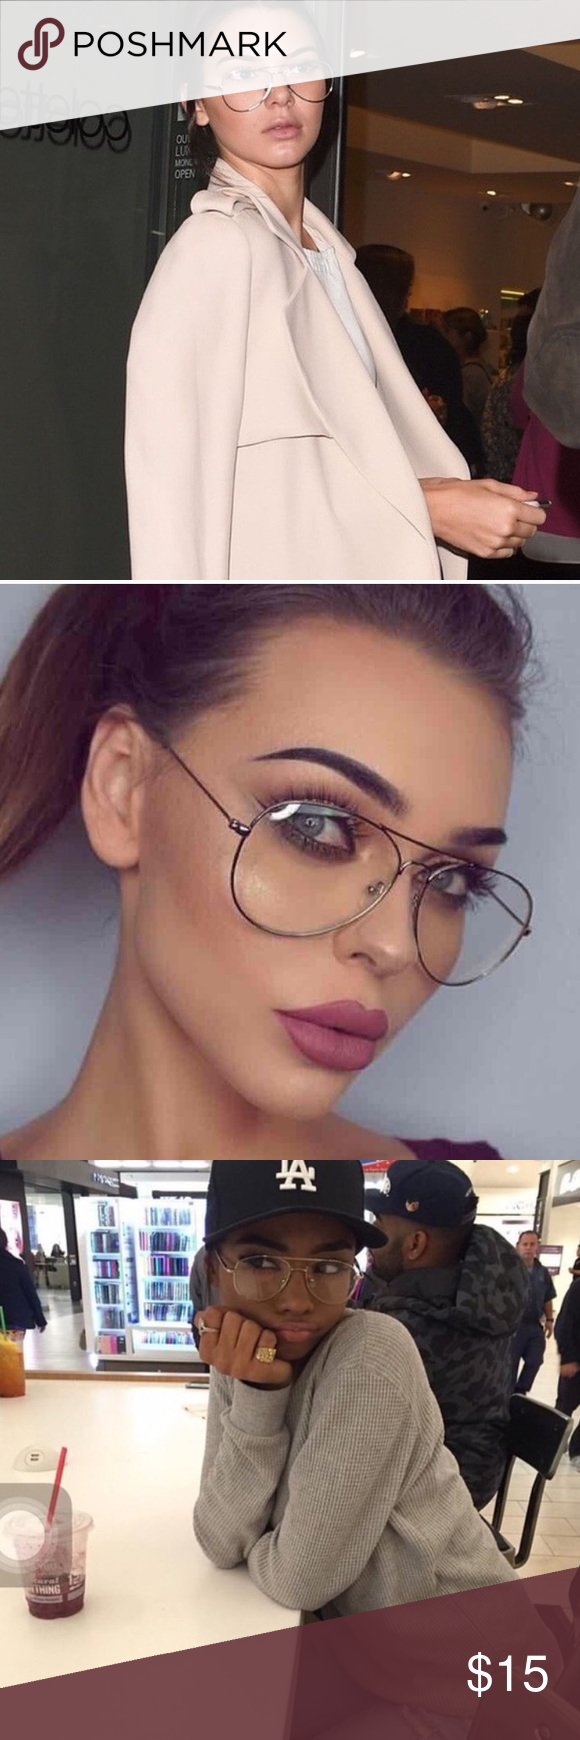 d1a7fbdd6f Clear aviator eye glasses non prescription Trendy aviator glasses NWT  boutique brand Accessories Glasses